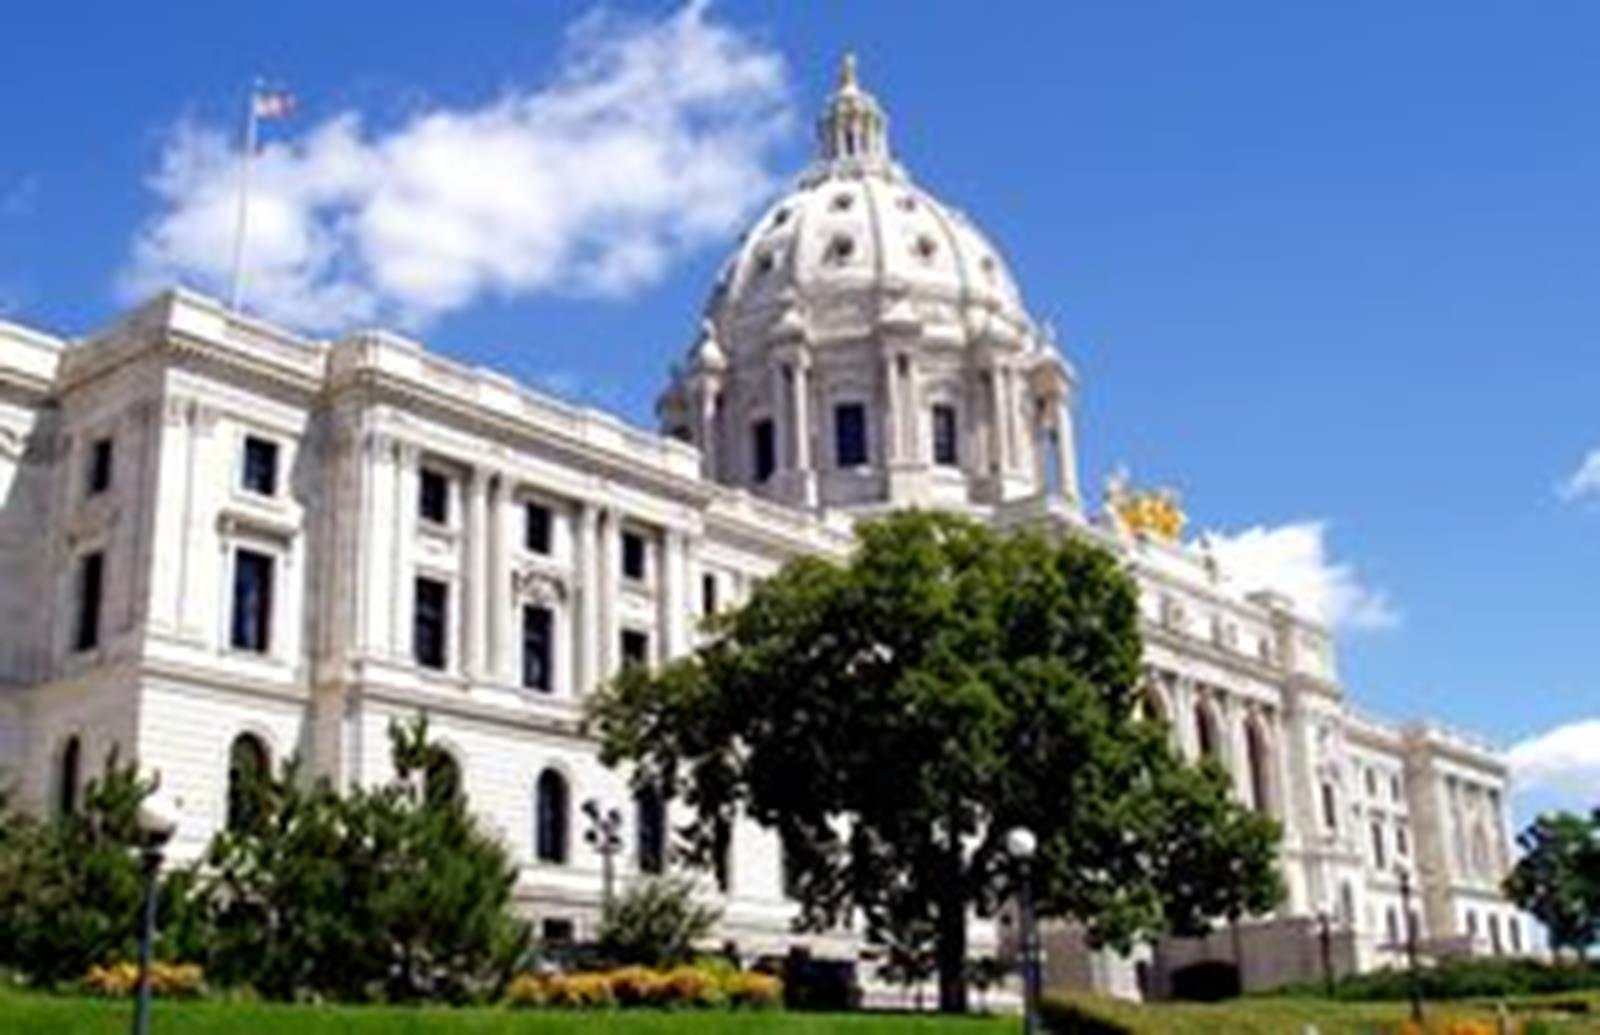 Take a specialized tour at the St. Paul, Minnesota capitol building. (Photo Courtesy of Dan Oldre)